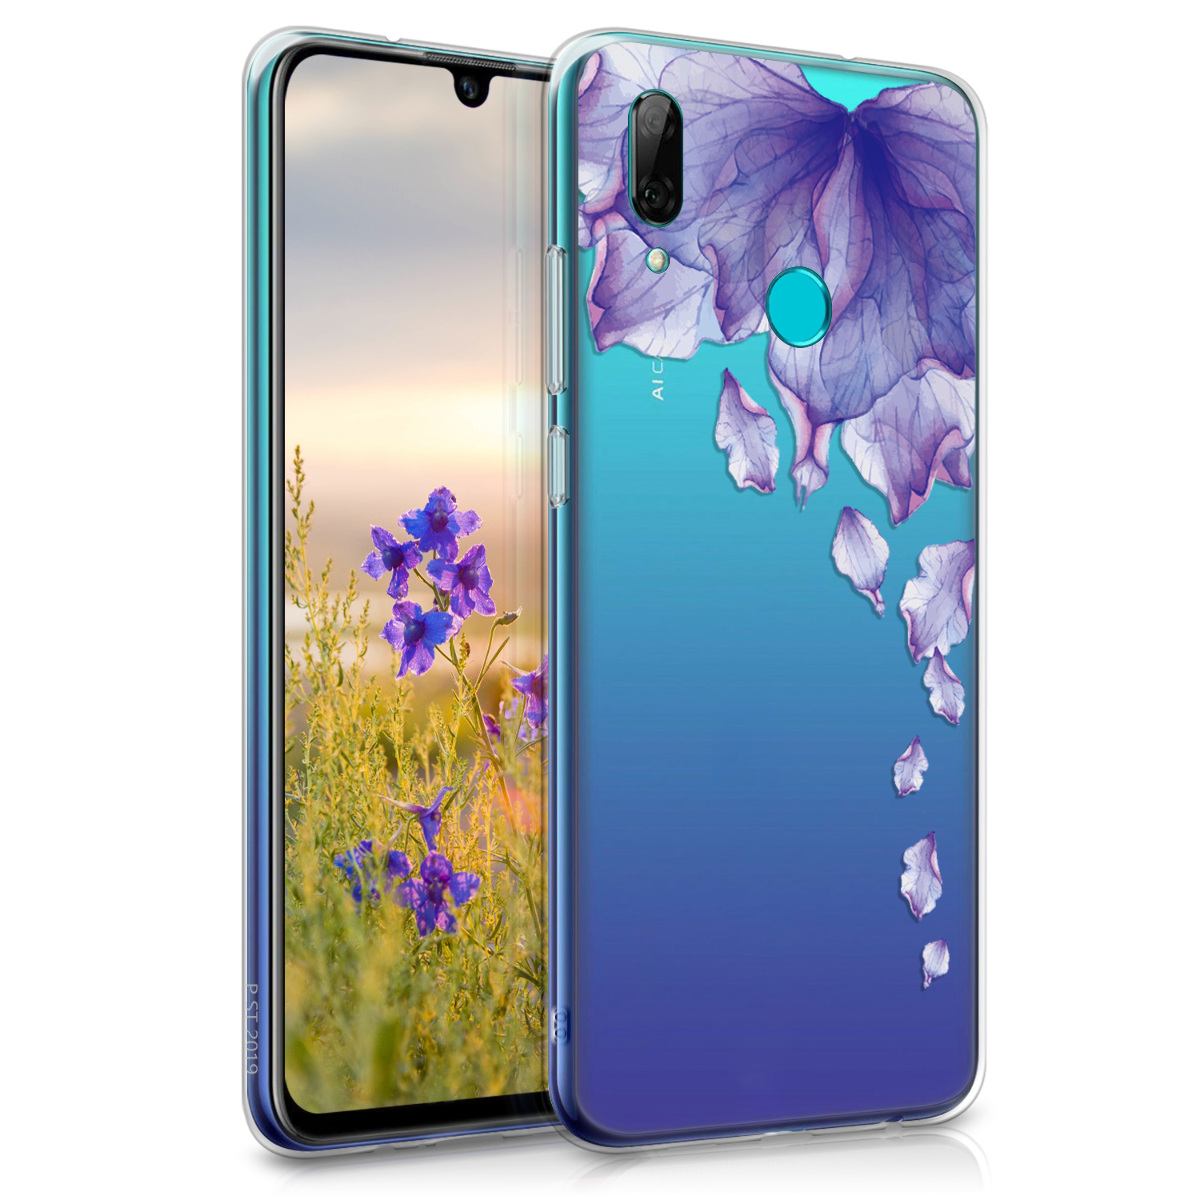 KW Θήκη Σιλικόνης Huawei P Smart 2019 - Dark Blue / Dark Pink / Transparent (47388.36)